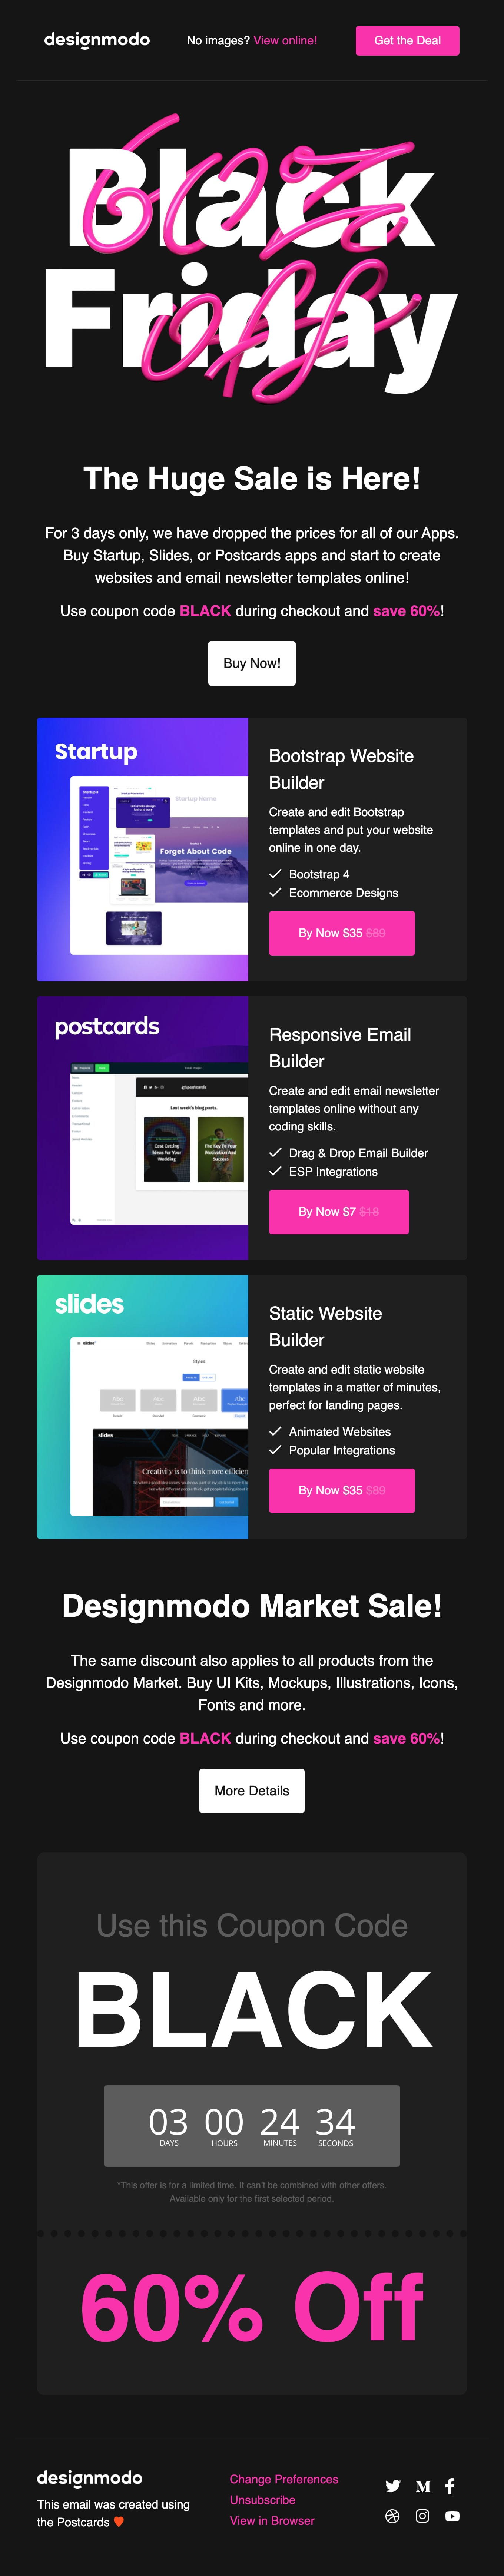 Black Friday on Designmodo, 60% Discount! Email Screenshot